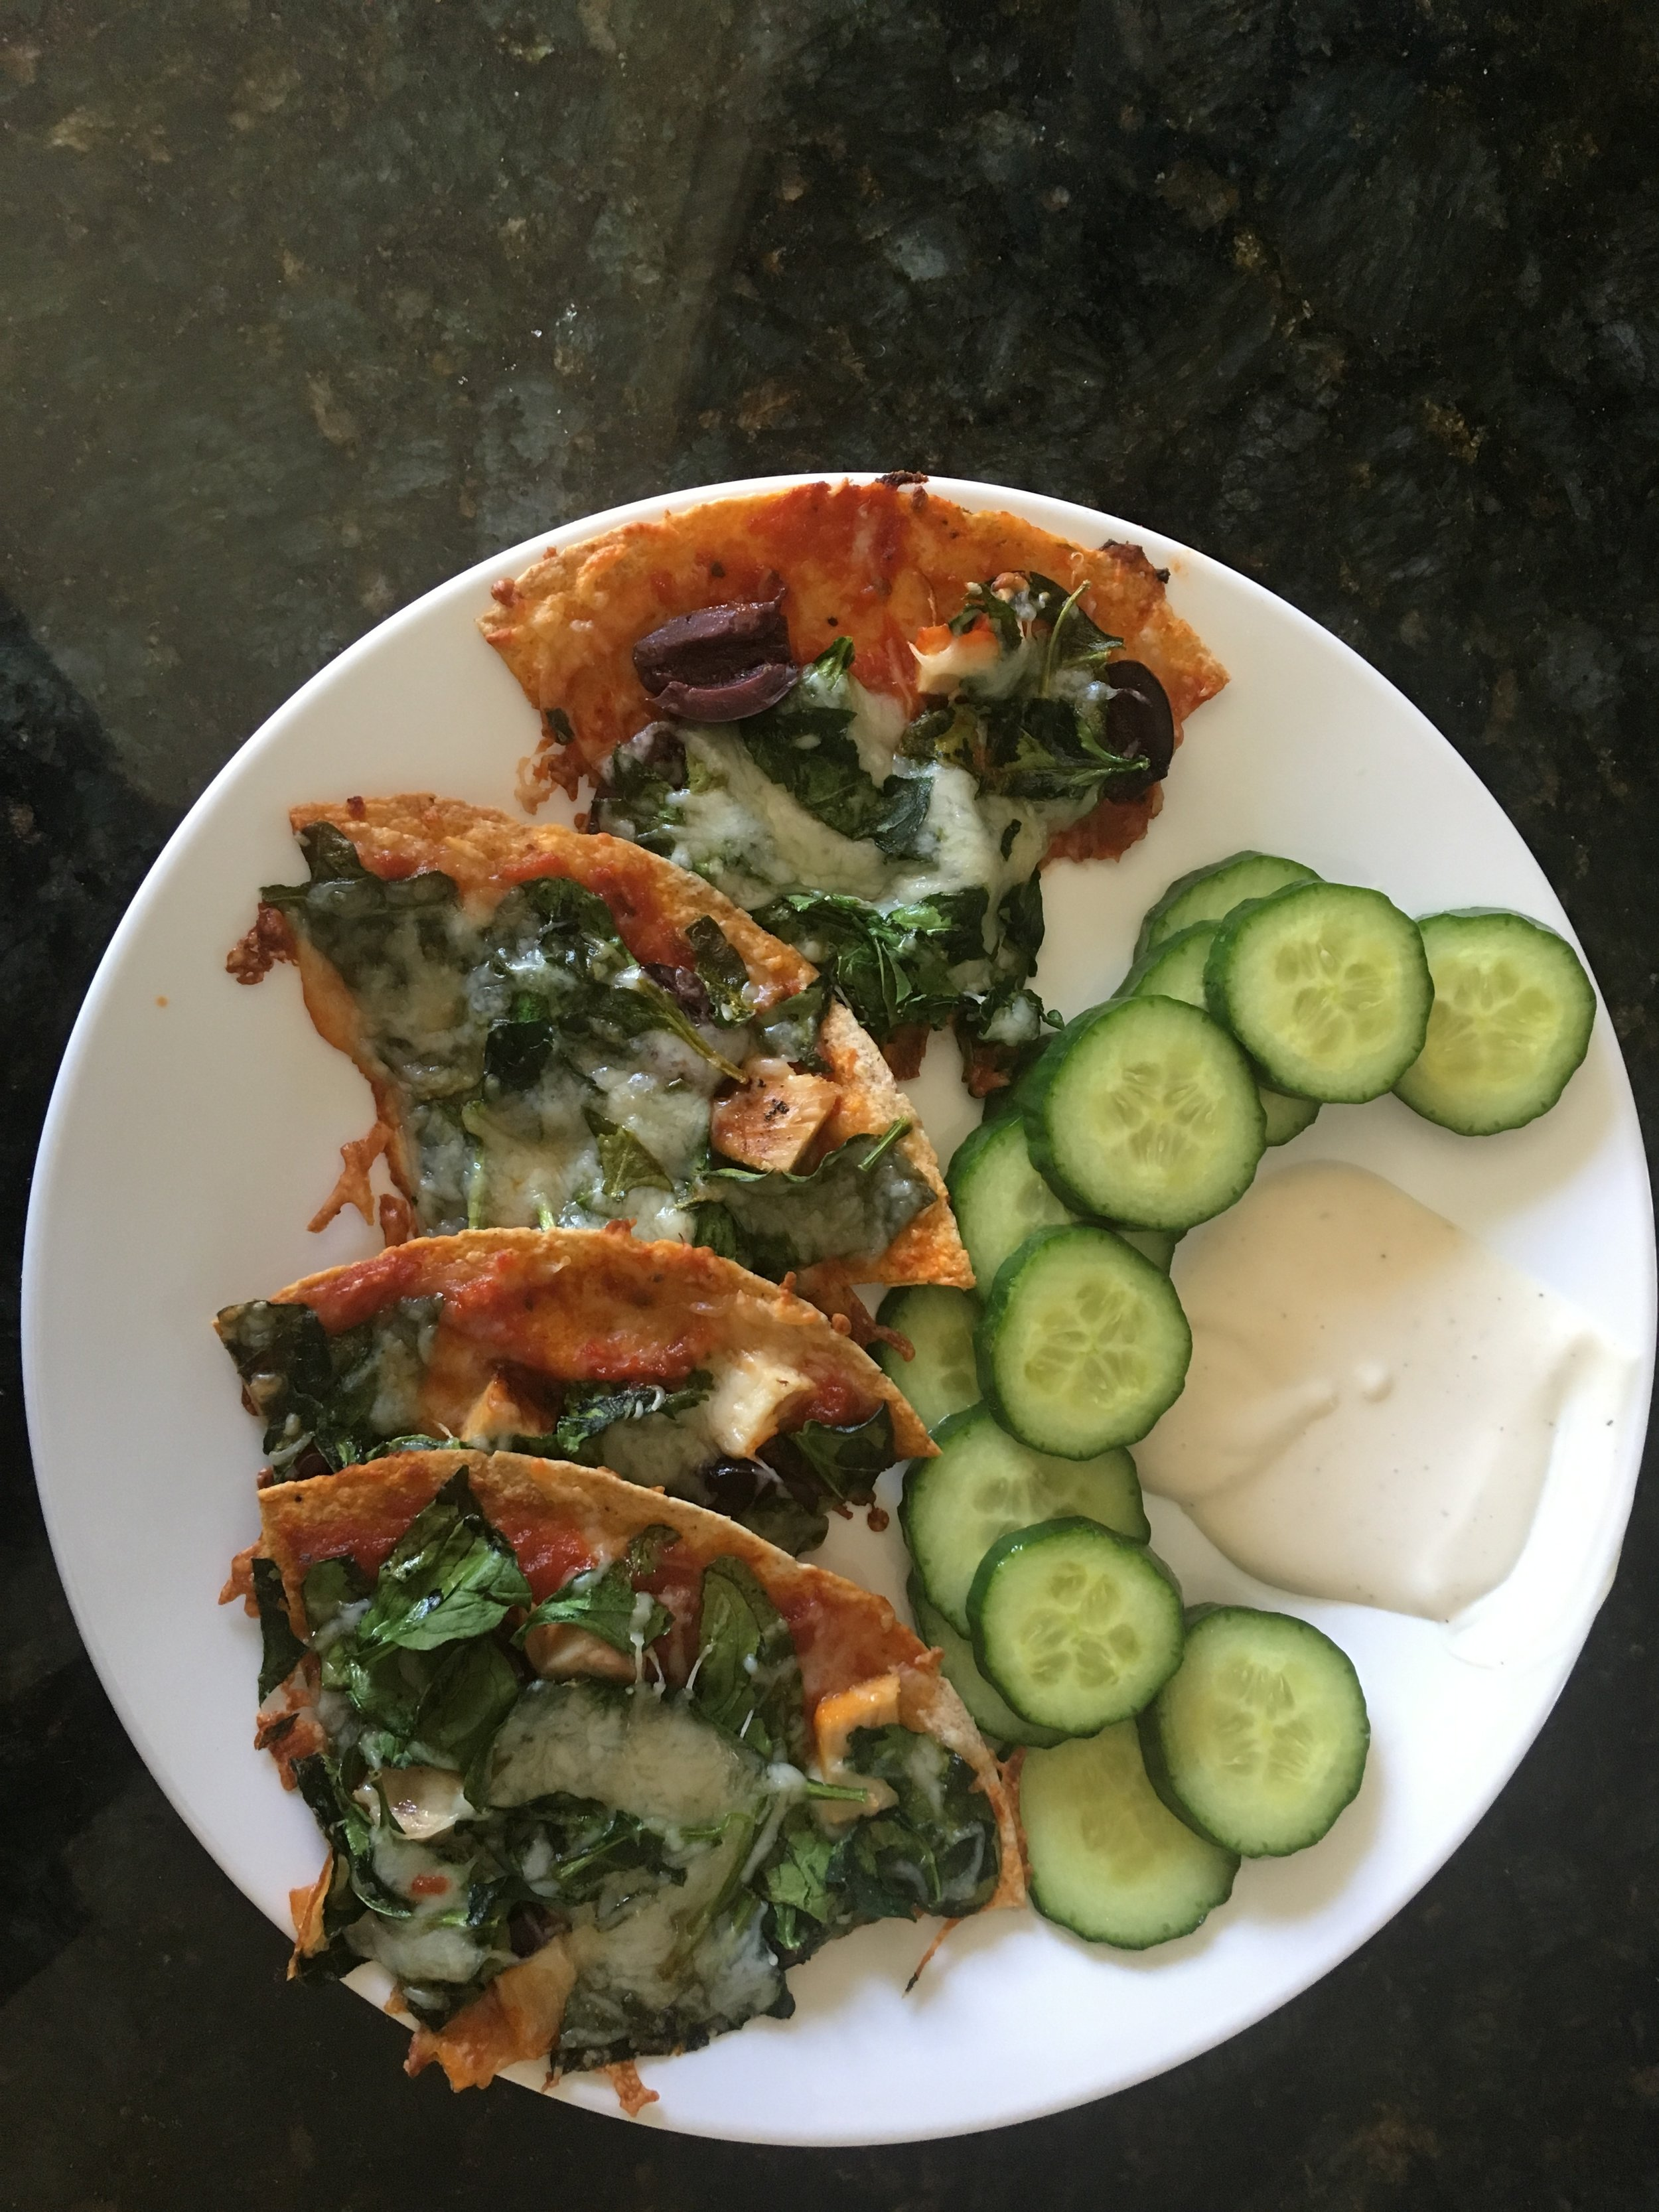 Greek Pizza - Preheat to 425.Olive Oil/SprayOle Health & Wellness Tortilla1/8 cup Rao's pizza sauce1 Serving Kalamata Olives2-3 Ounces of Chicken1/2 Cup Spinach1/2 Cup Shredded Cheese